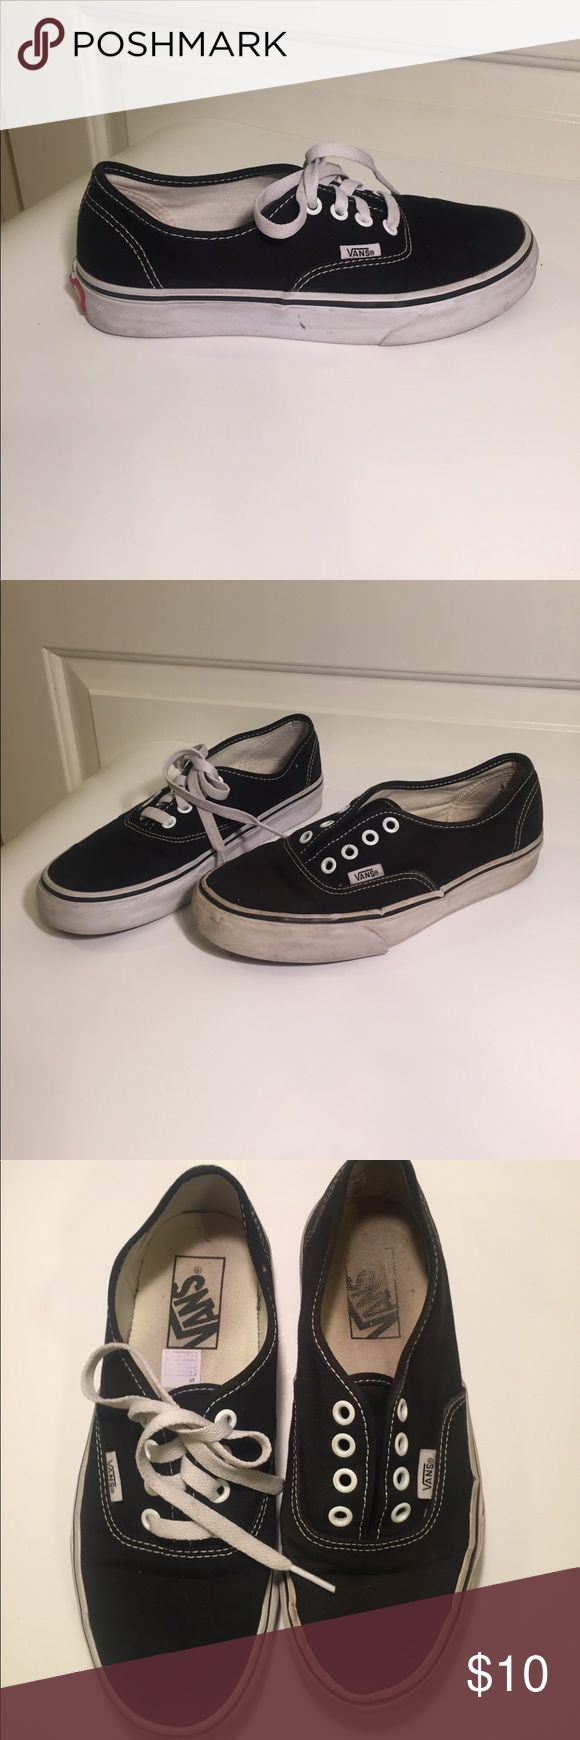 Vans Authentic Black Size 5. Vans Authentic Black Size 5.  Please note, shoes show wear and are missing shoe lace on left shoe. Vans Shoes Sneakers